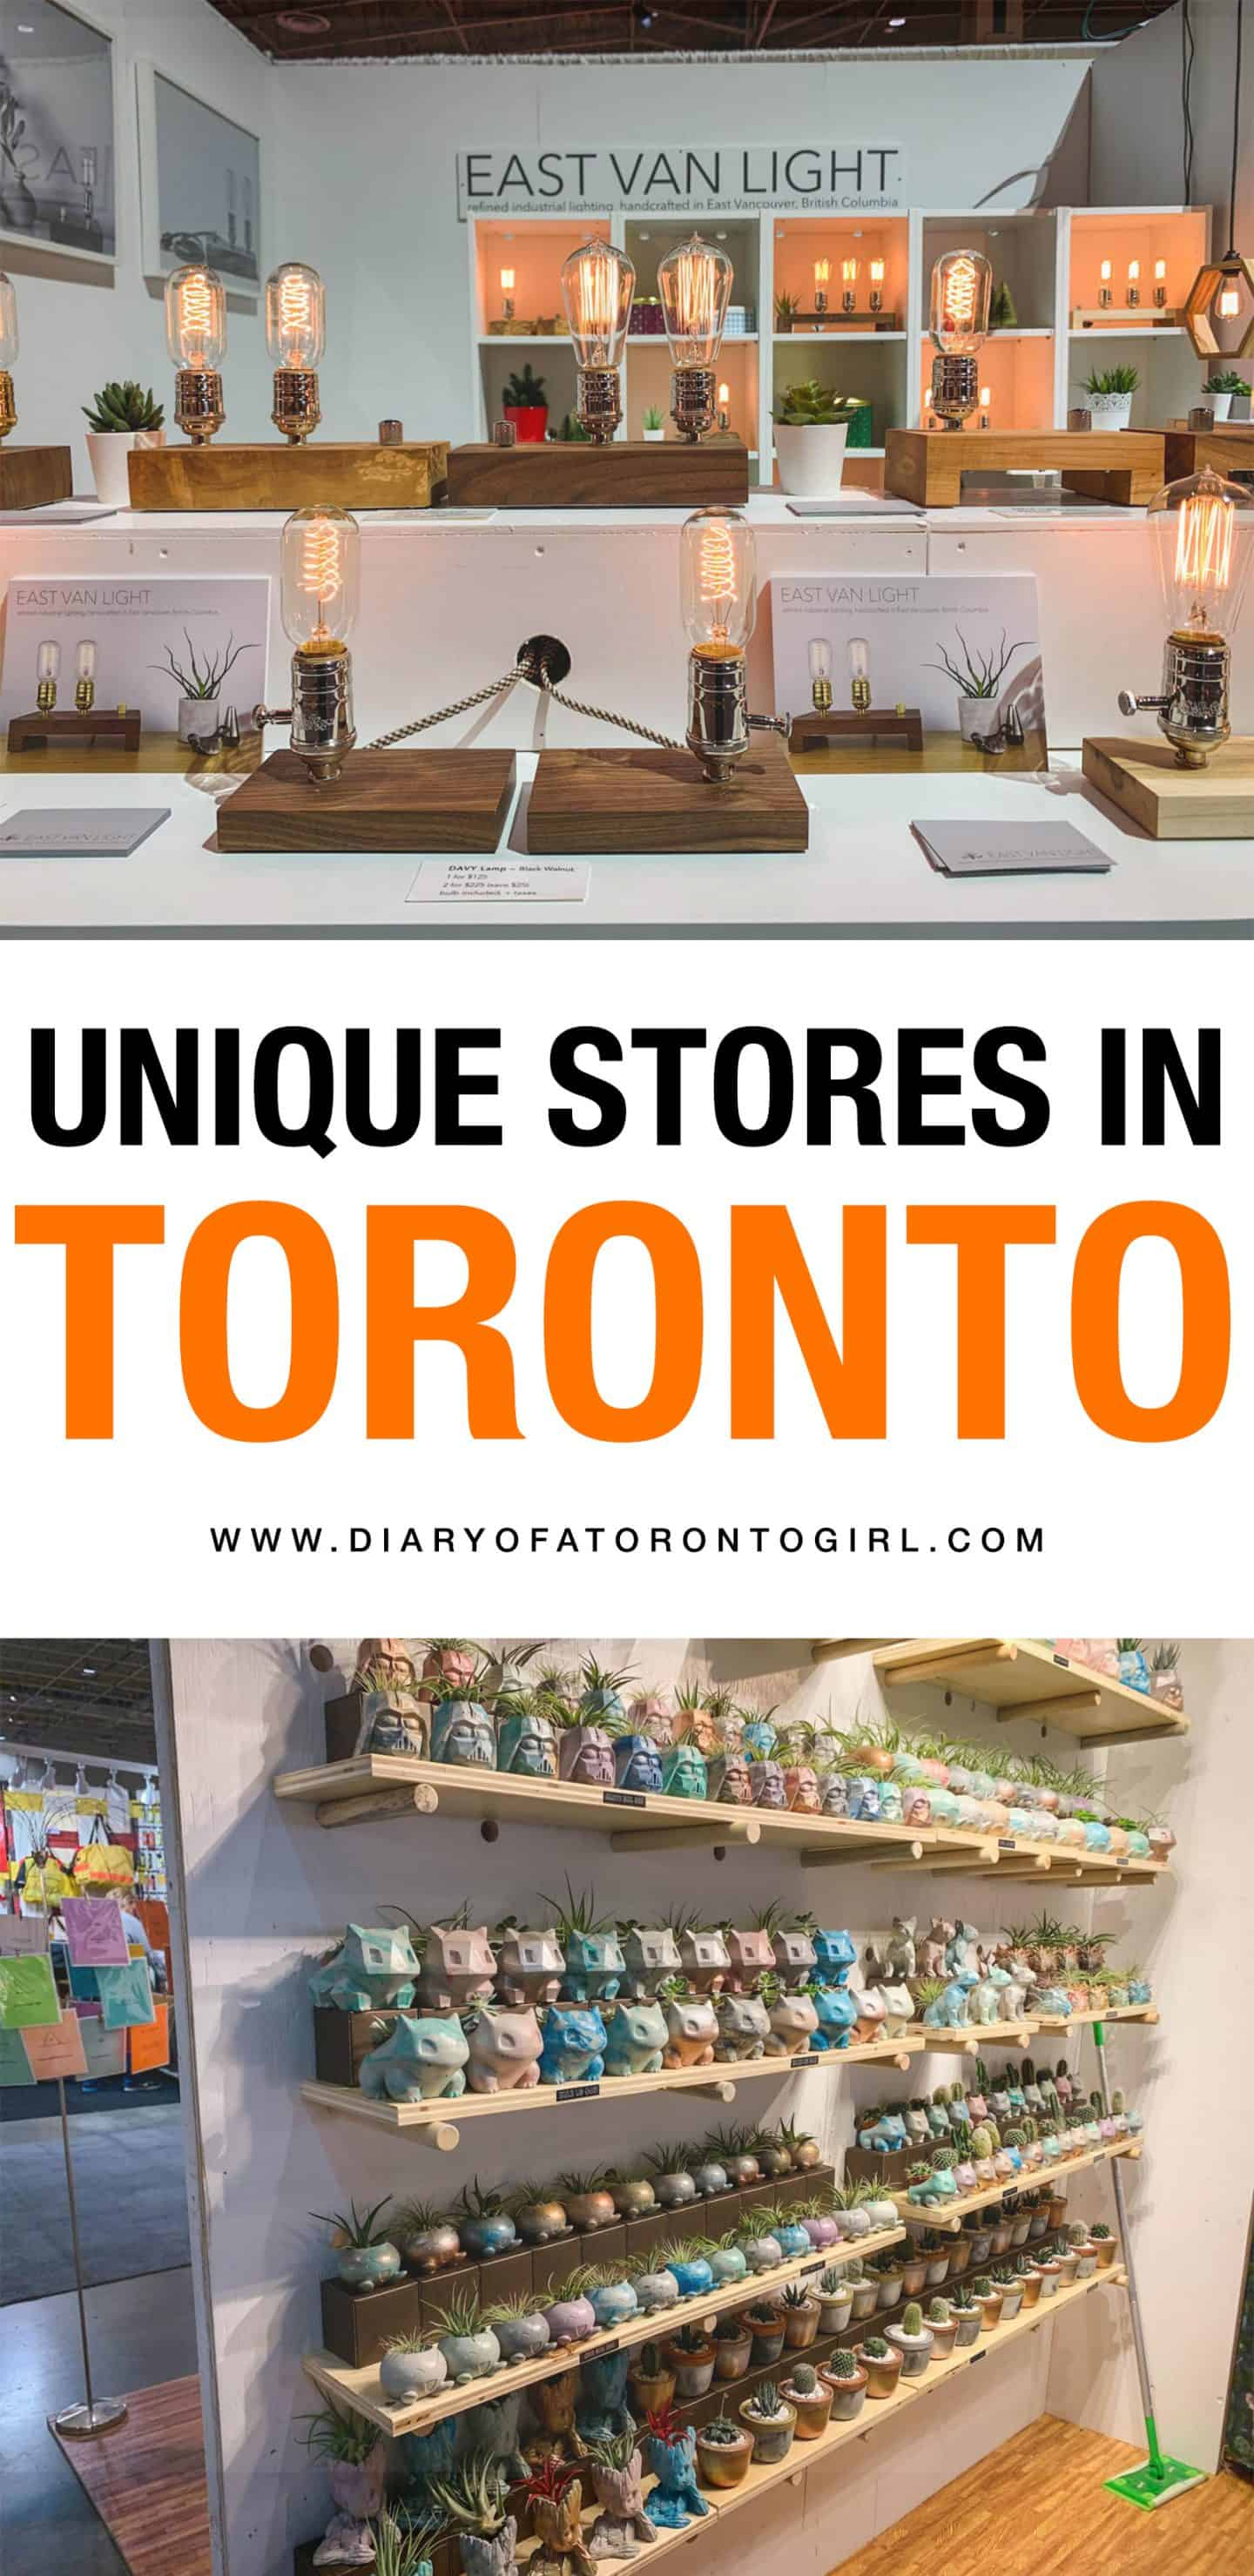 Looking to find more unique Toronto gifts for your loved ones? Here are some great stores that are perfect for all of your gift shopping!